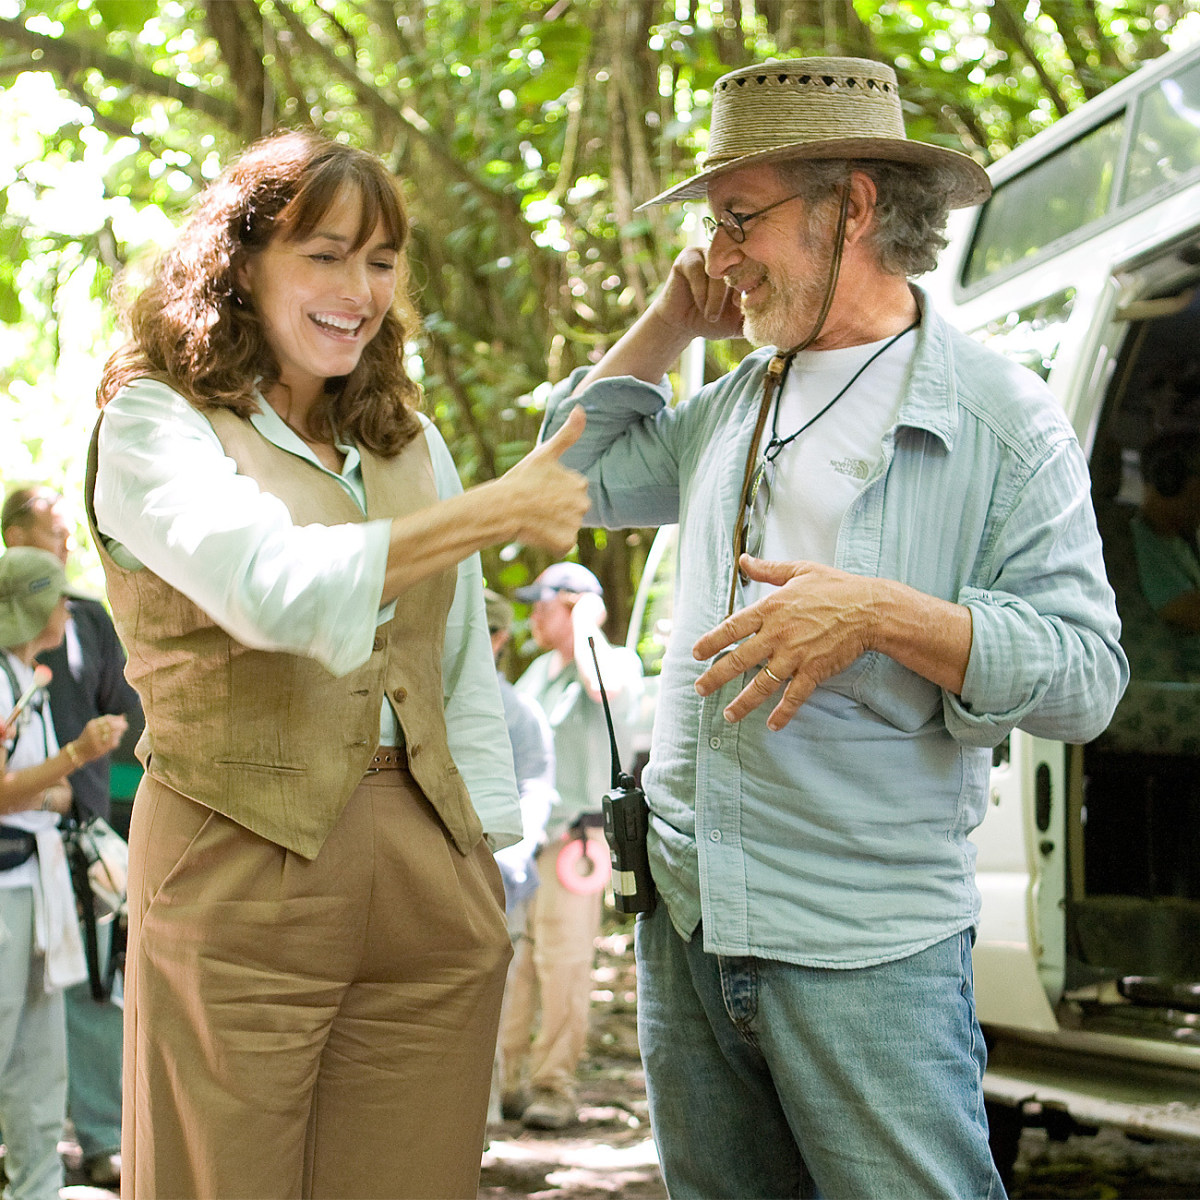 Indiana Jones and the Kingdom of the Crystal Skull (2008) Behind the Scenes